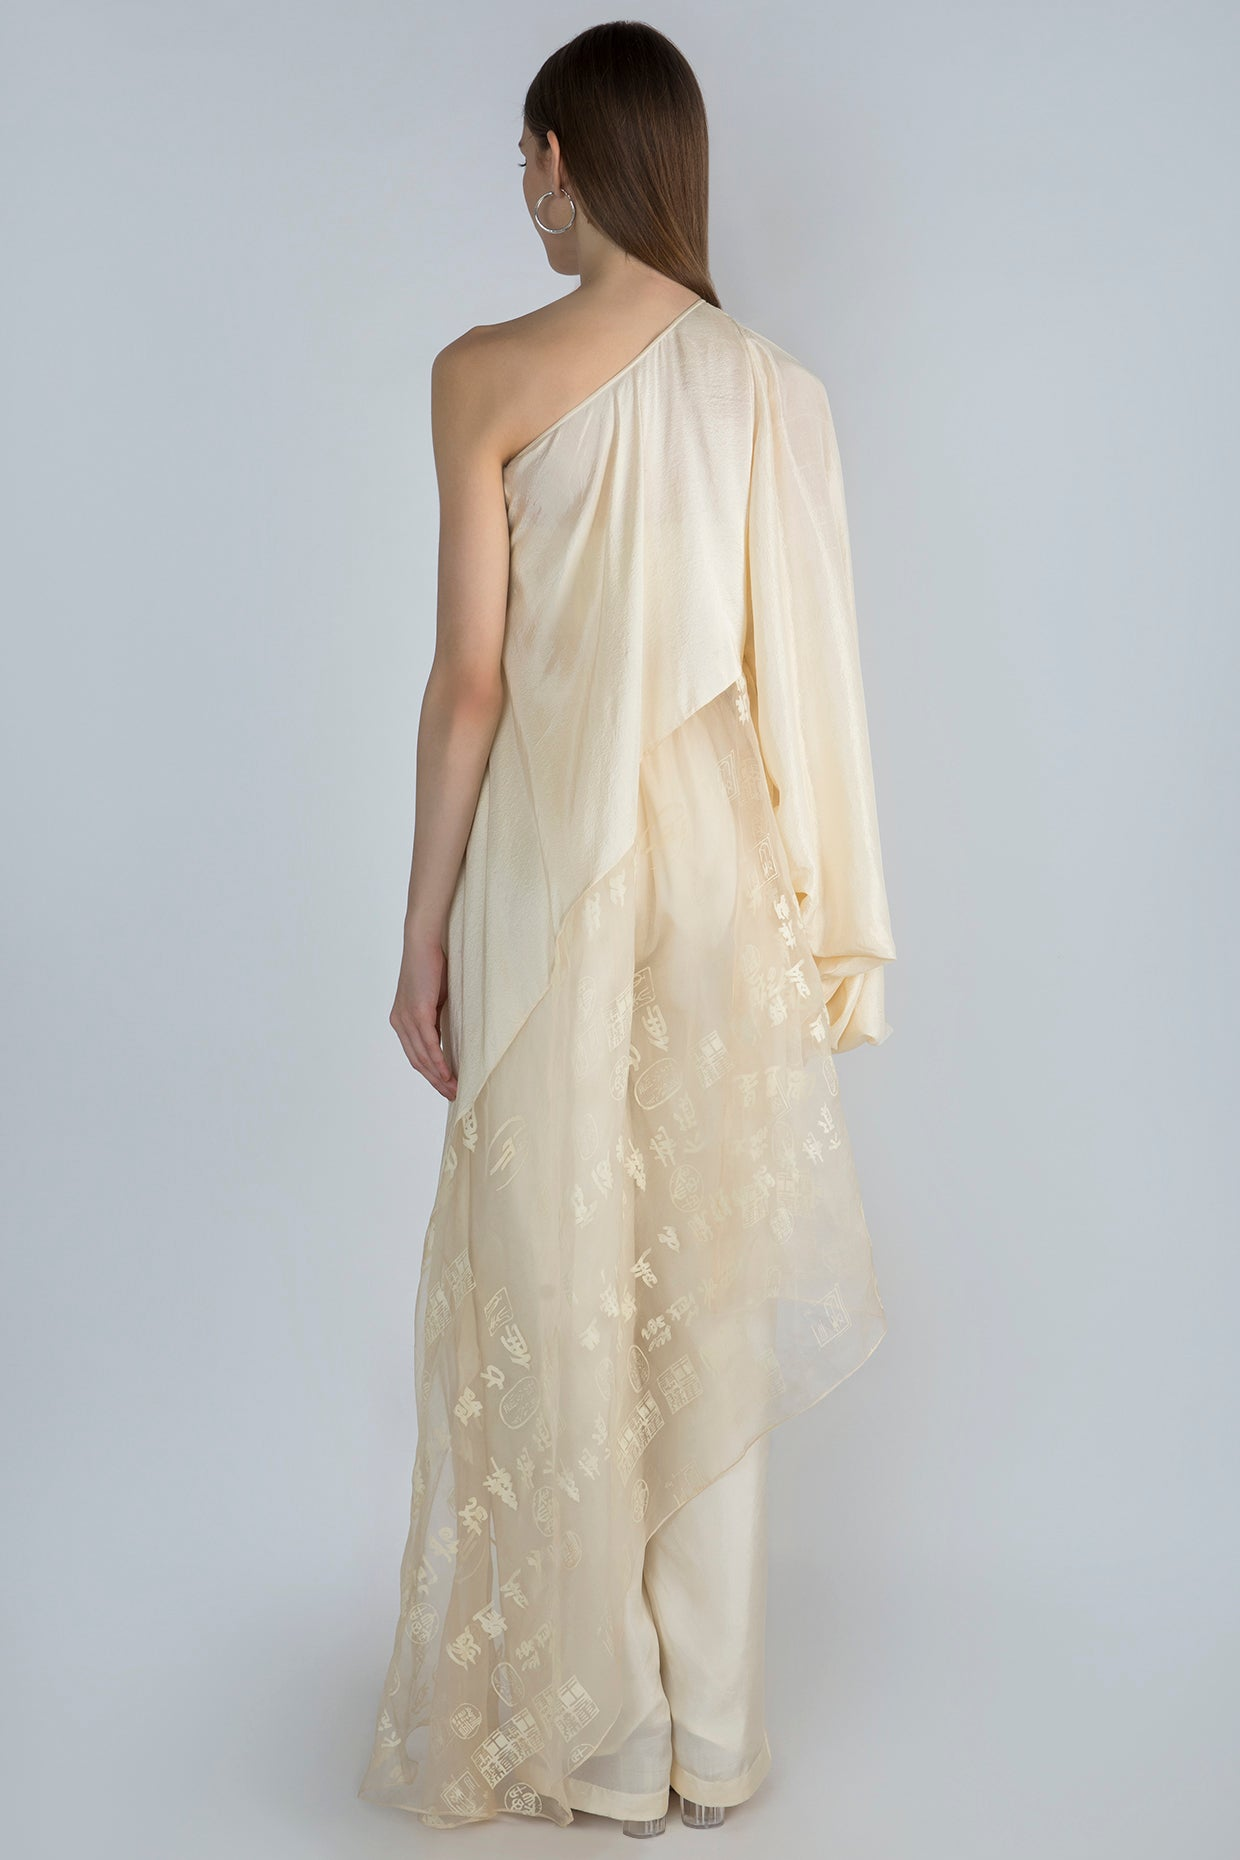 IVORY MANUSCRIPT PRINT ORGANZA & PEARL EMBROIDERED CREPE ONE SHOULDER TUNIC & IVORY PANTS - The Grand Trunk